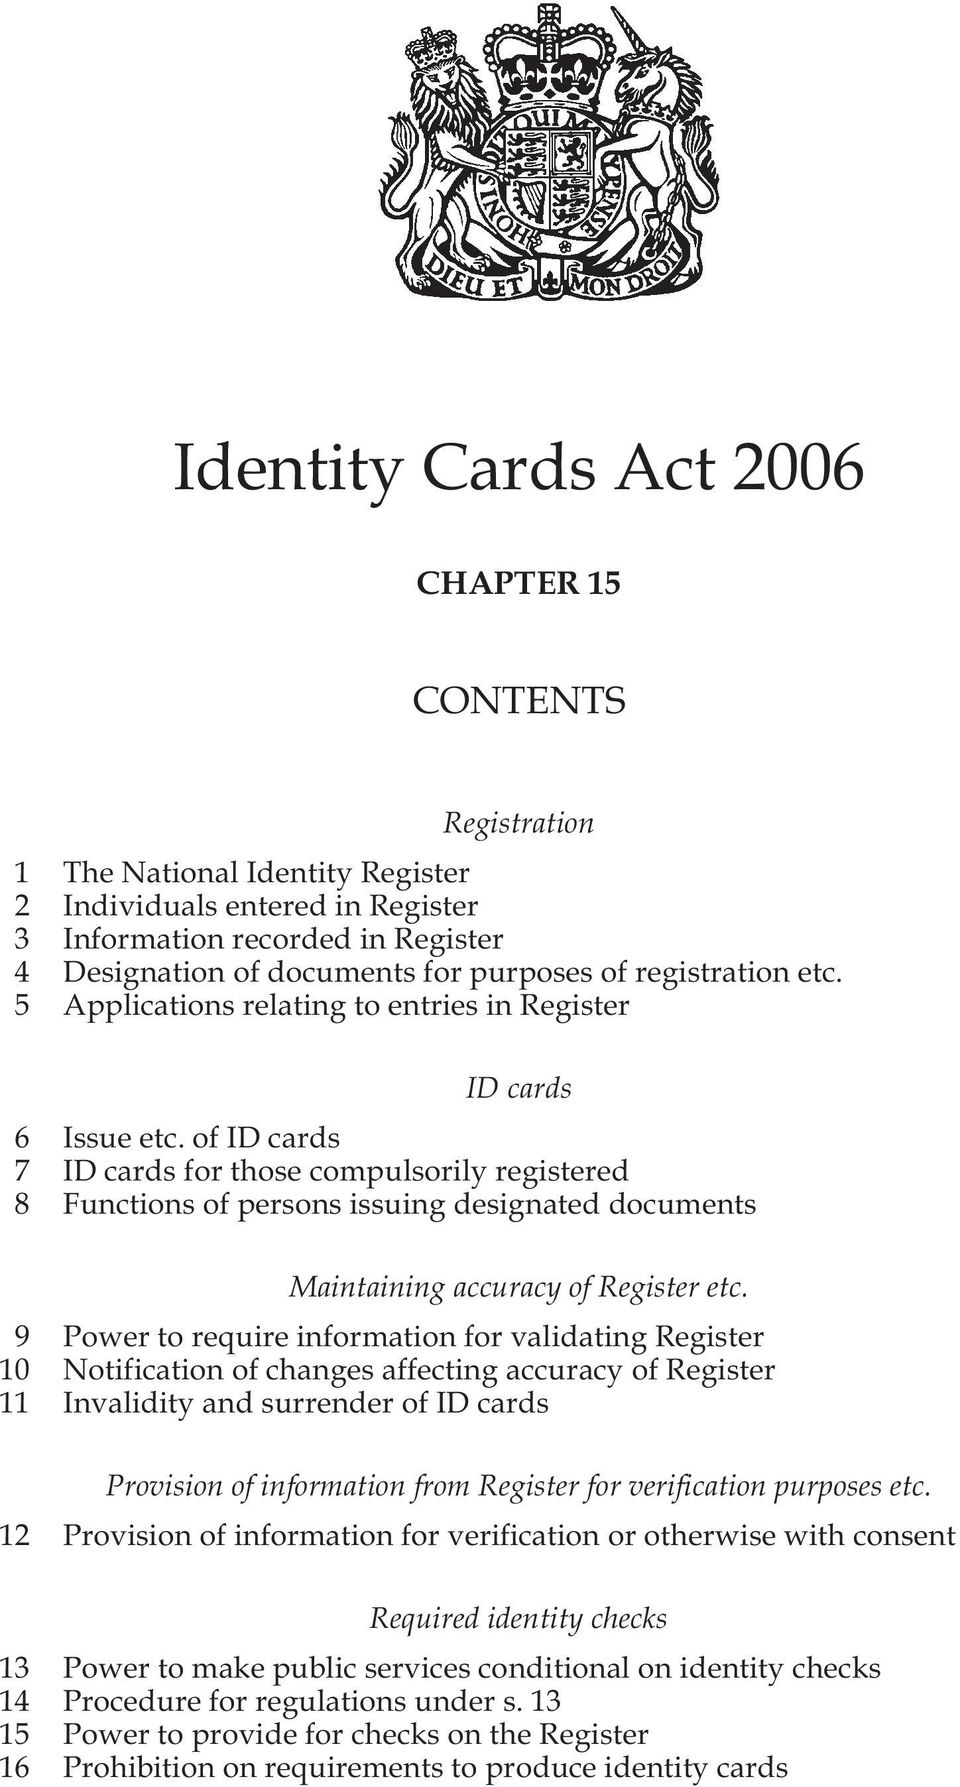 of ID cards 7 ID cards for those compulsorily registered 8 Functions of persons issuing designated documents Maintaining accuracy of Register etc.